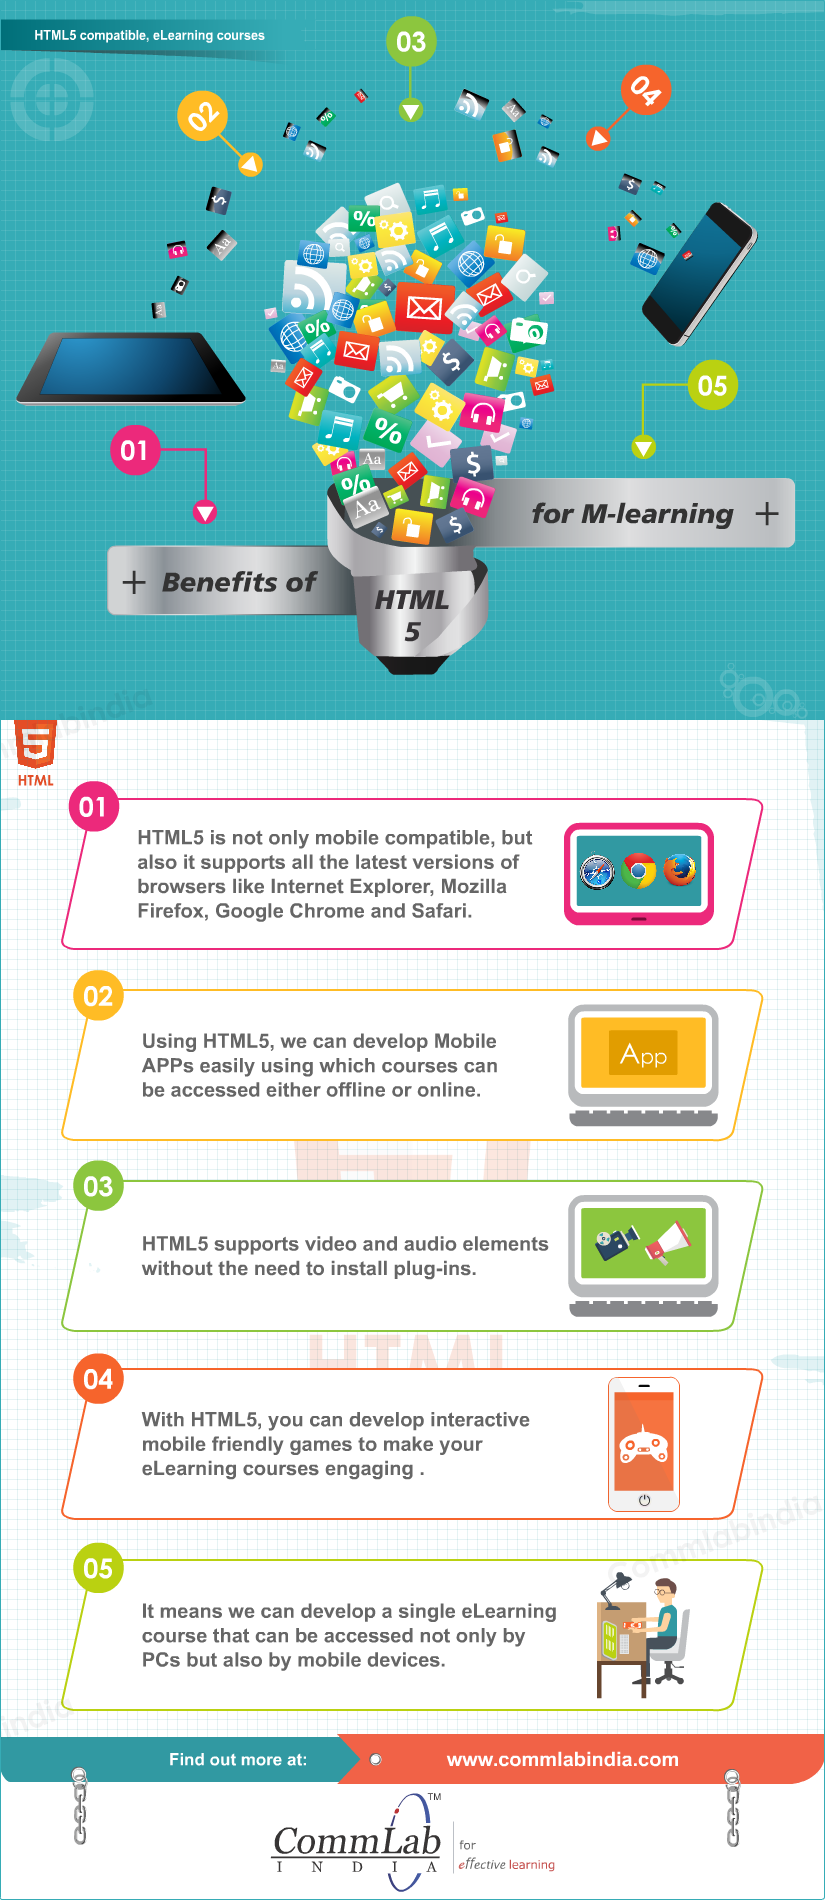 Benefits of HTML5 for M-learning